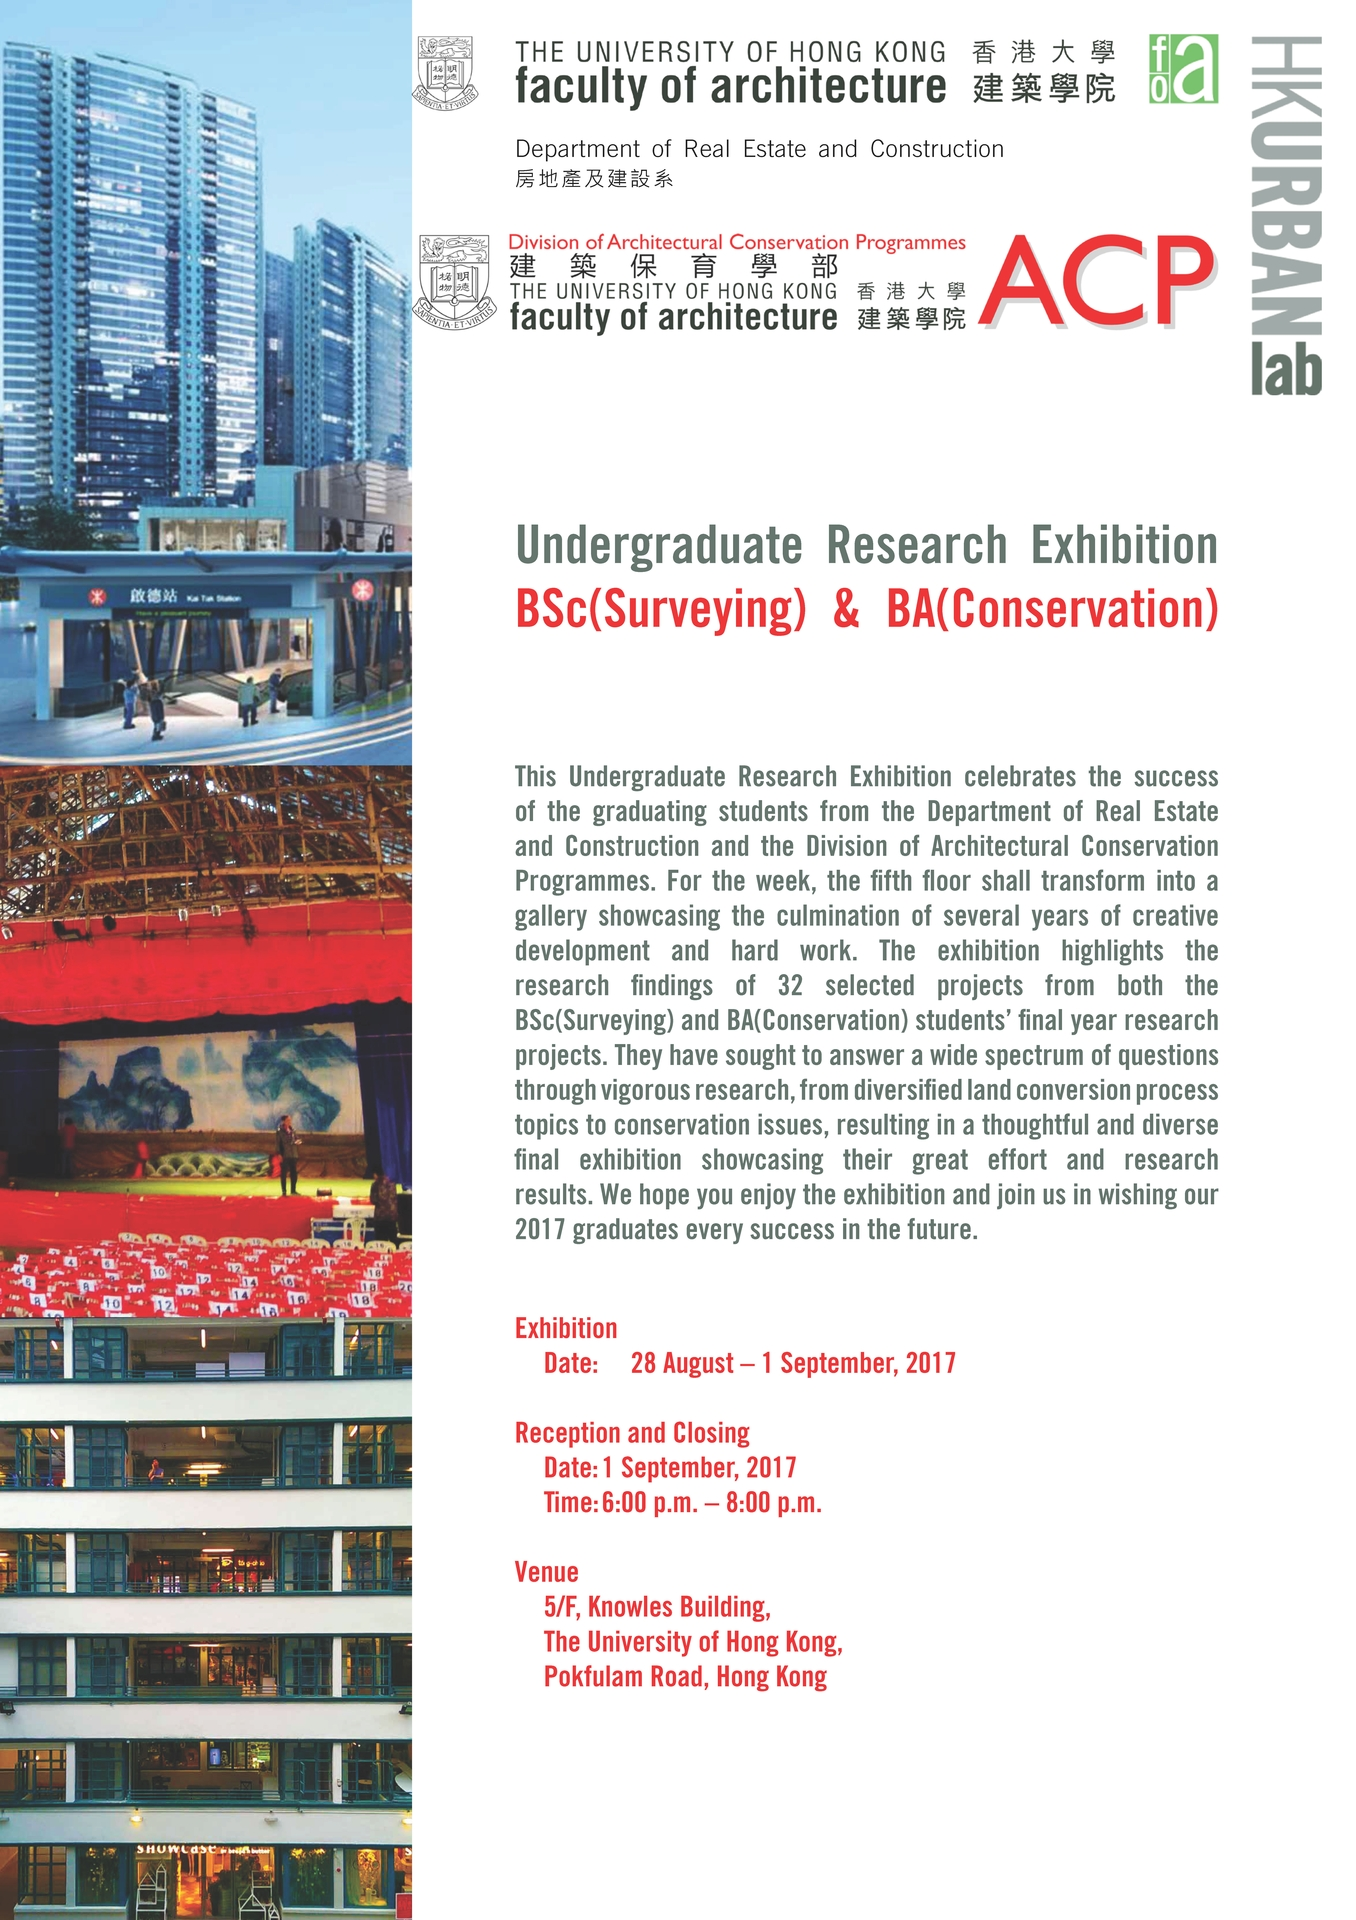 Undergraduate Research Exhibition 2017